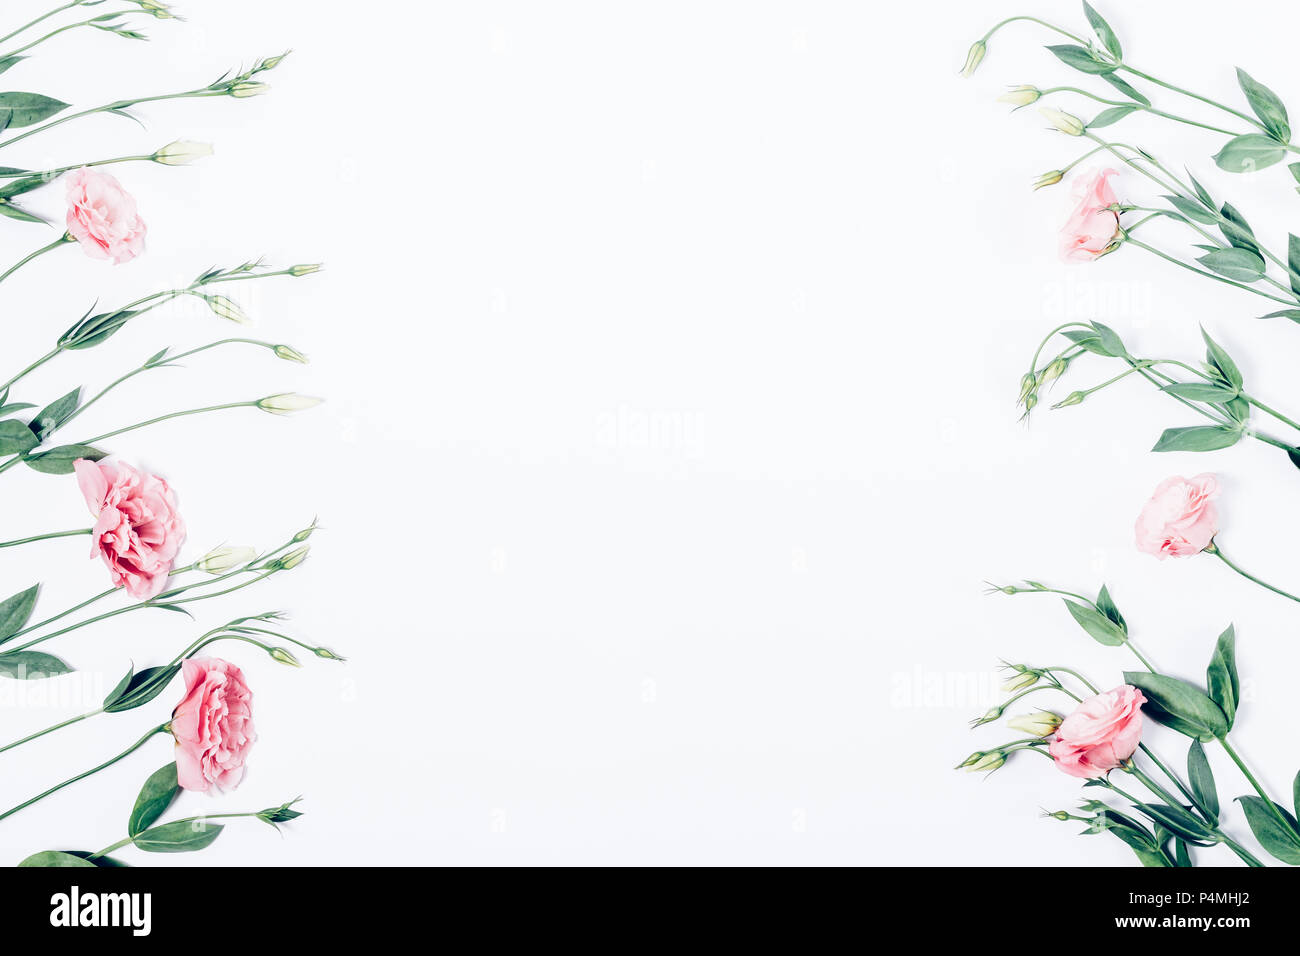 Floral flat lay frame of pink flowers on white background borders floral flat lay frame of pink flowers on white background borders with empty space in the center made of blooming eustomas leaves and buds top view mightylinksfo